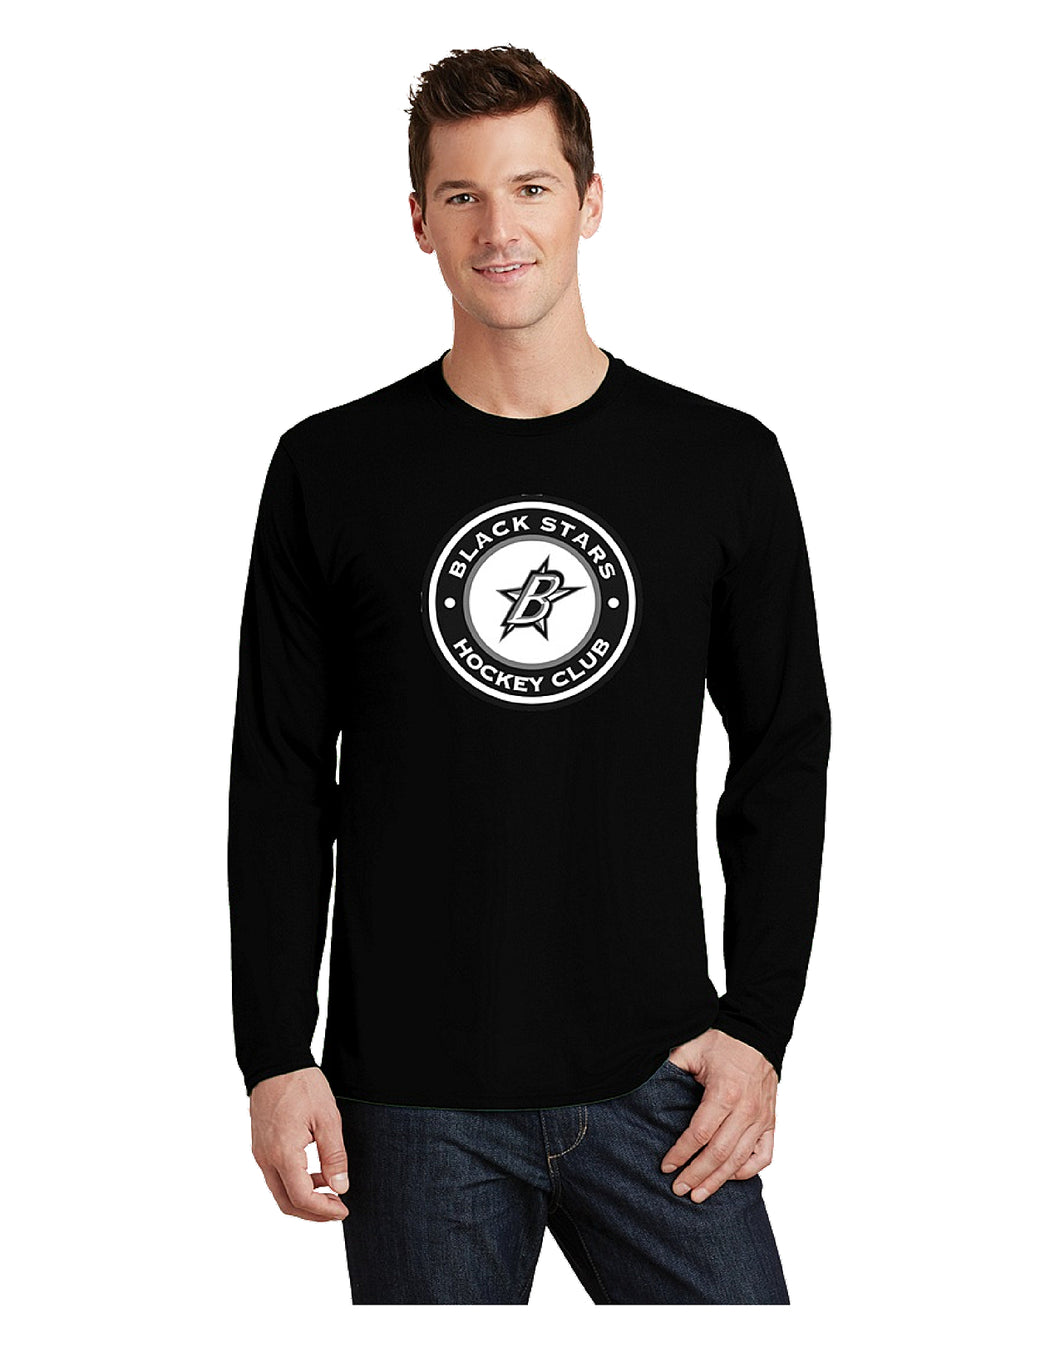 Black Stars Port & Company® Long Sleeve Fan Favorite™ Tee Black With Black Stars Circle Club Logo (PC450LS)